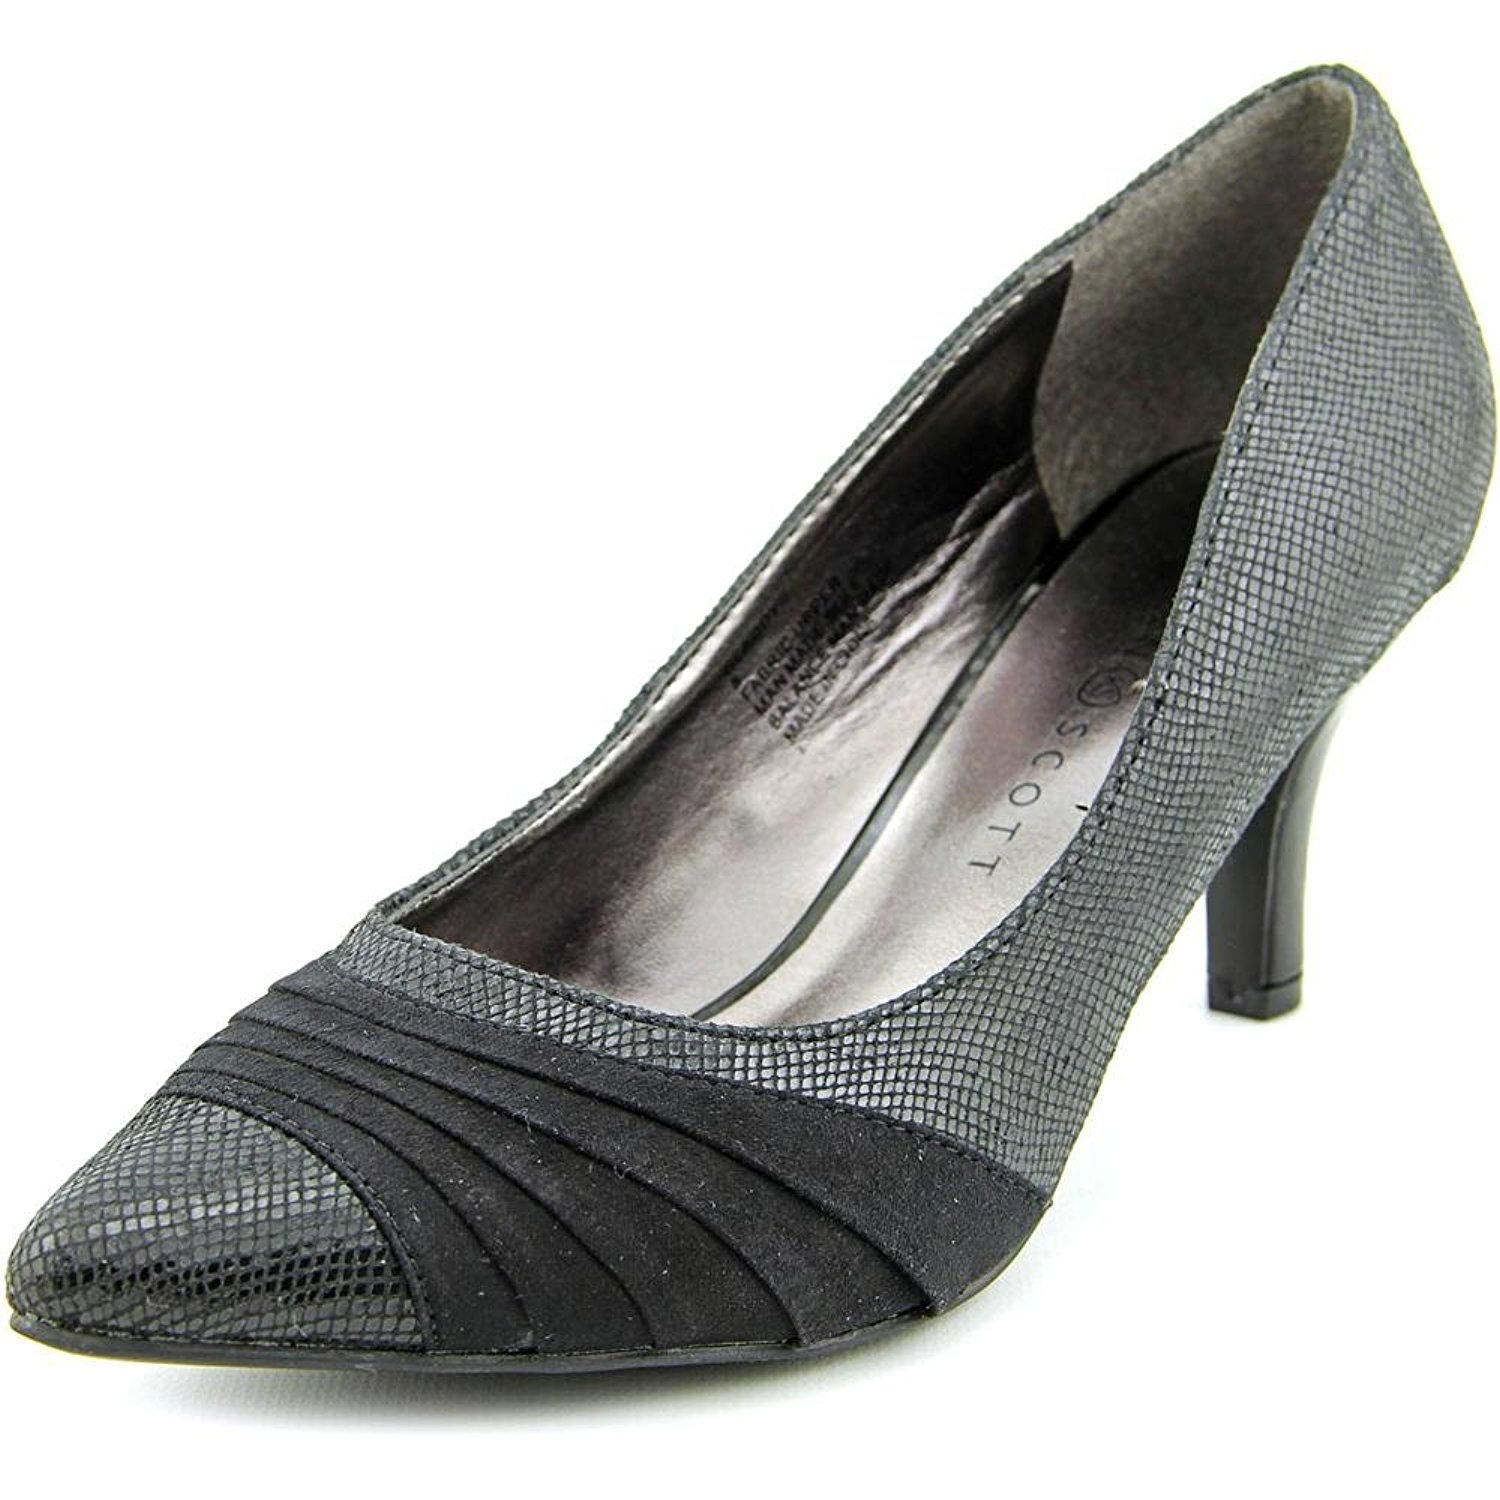 Karen Scott Womens Gladdys Crocodile Pointed Toe Classic Pumps Black Size 10.0